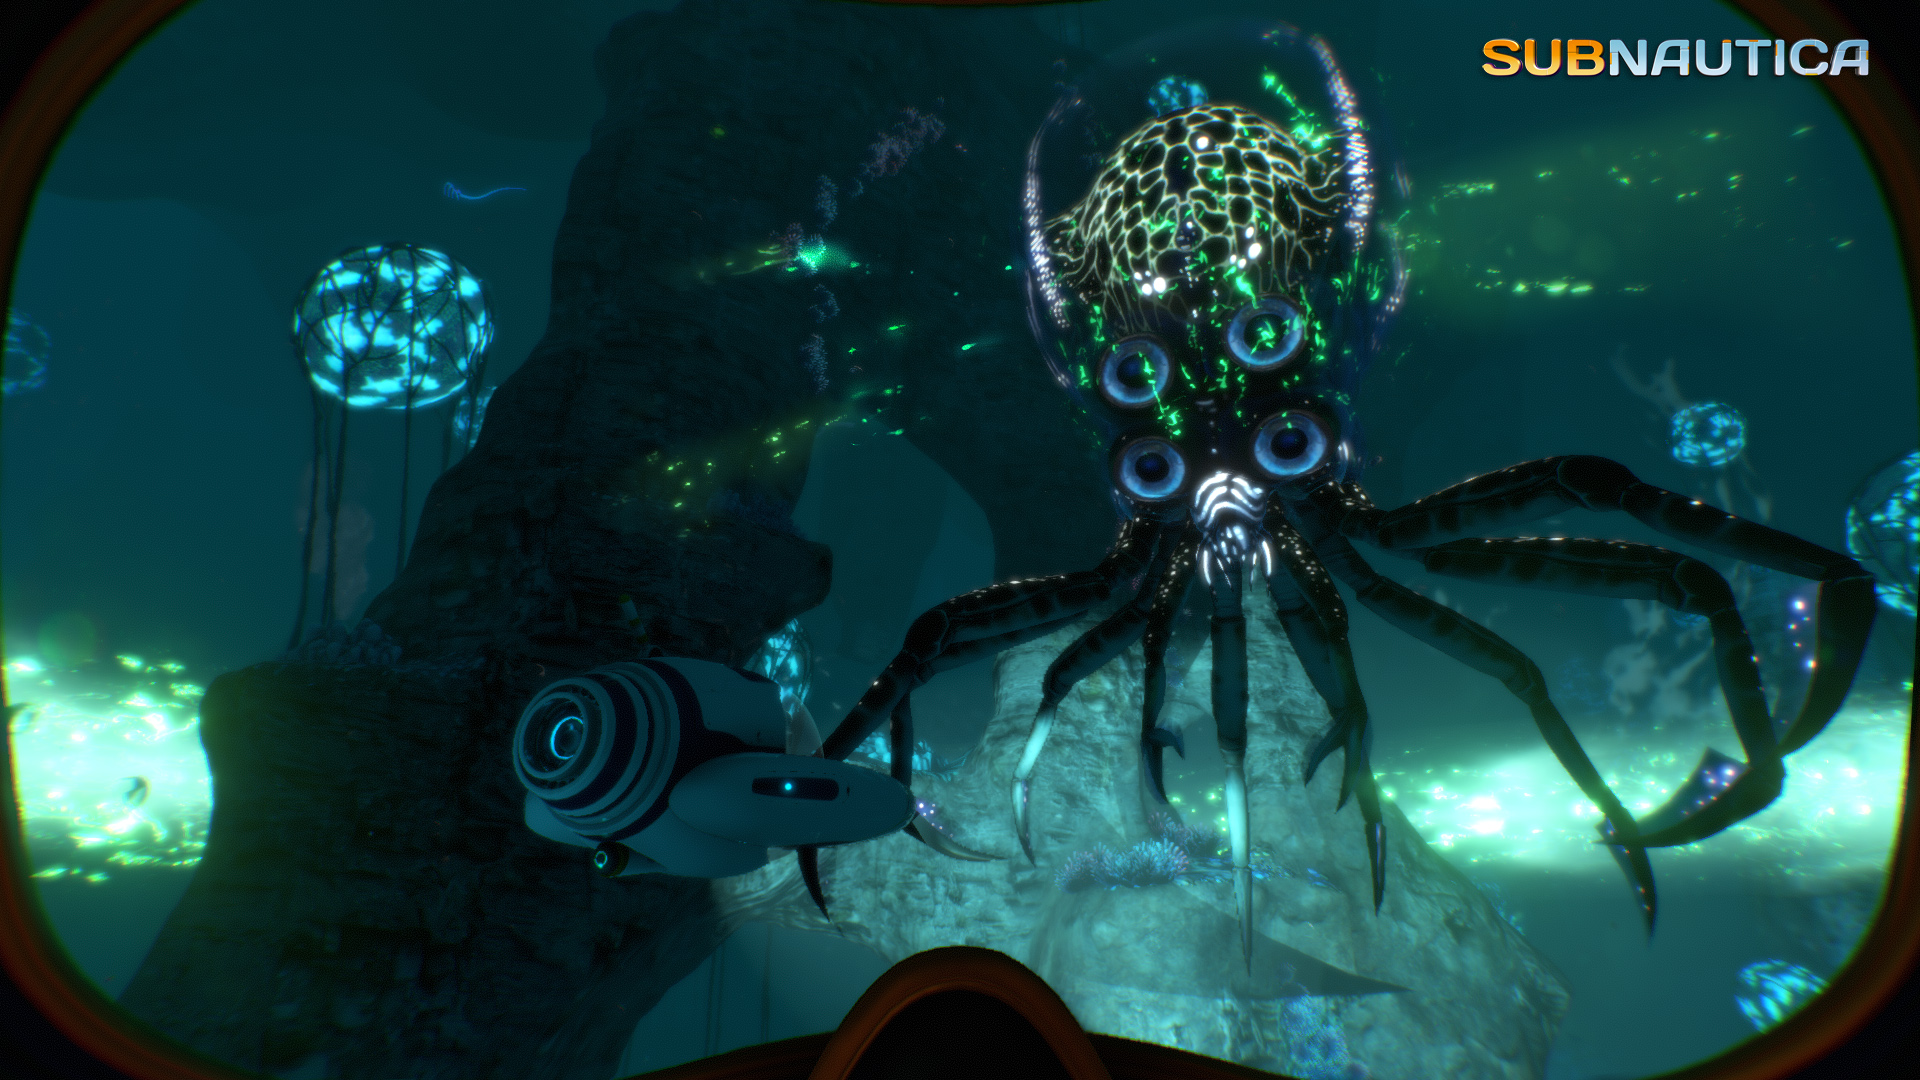 Subnautica-SteamVR-Oculus-RIft-HTC-Vive-Full-Release